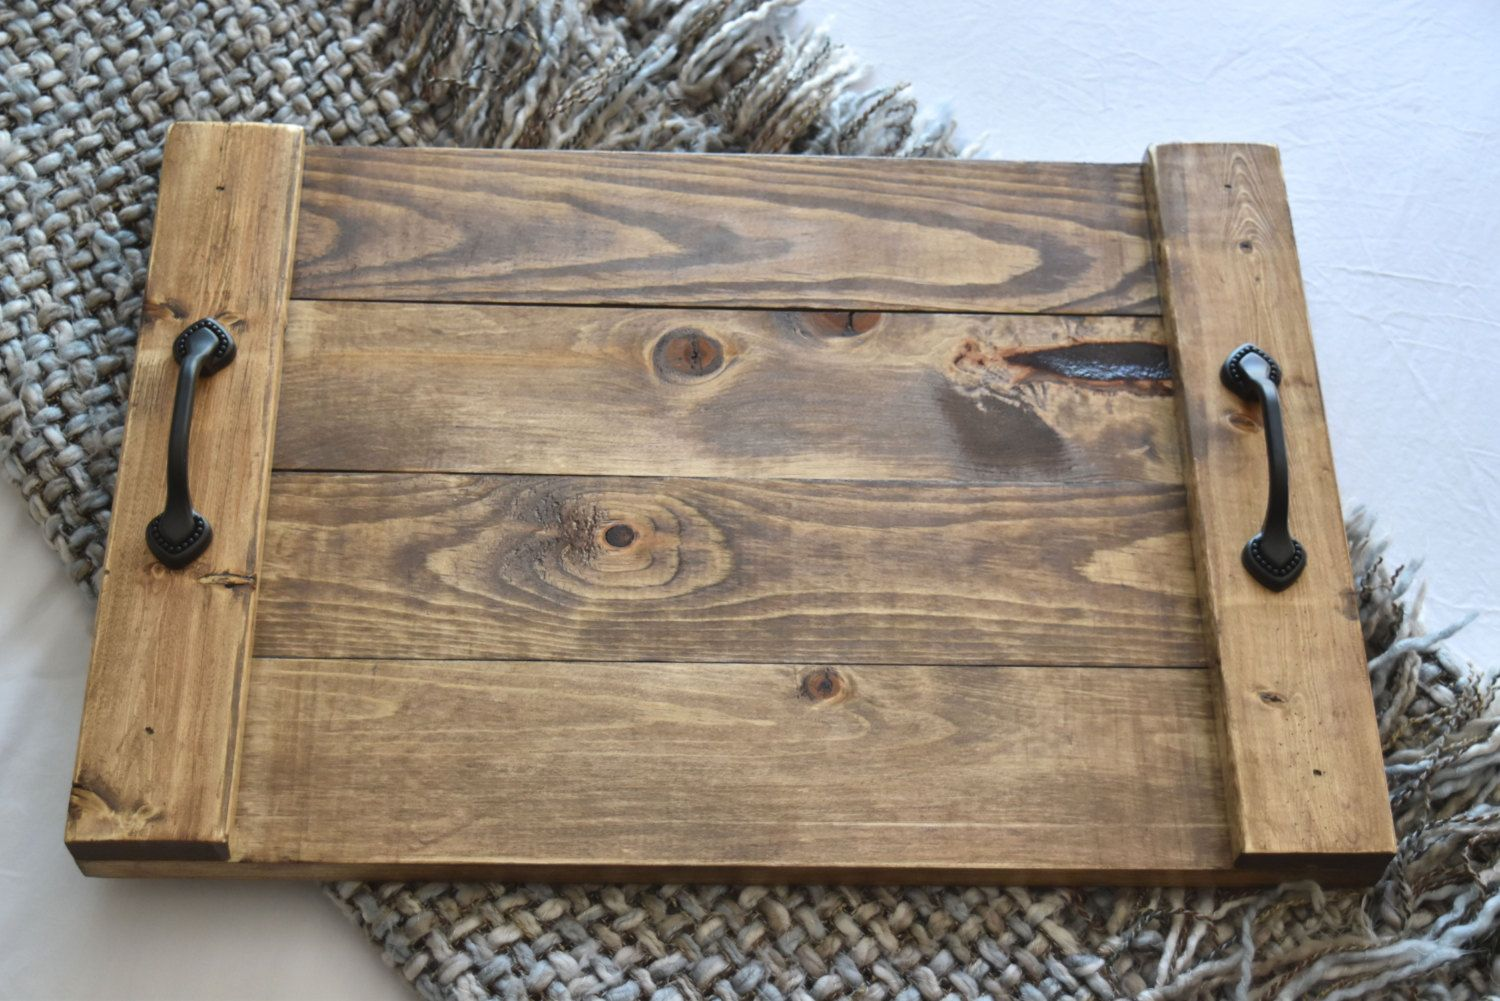 Rustic Wooden Ottoman Tray Decorative Tray Coffee Table Tray Farmhouse Decor Wooden Tray By N Coffee Table Decor Tray Tray Decor Coffee Table Farmhouse [ 1125 x 1500 Pixel ]